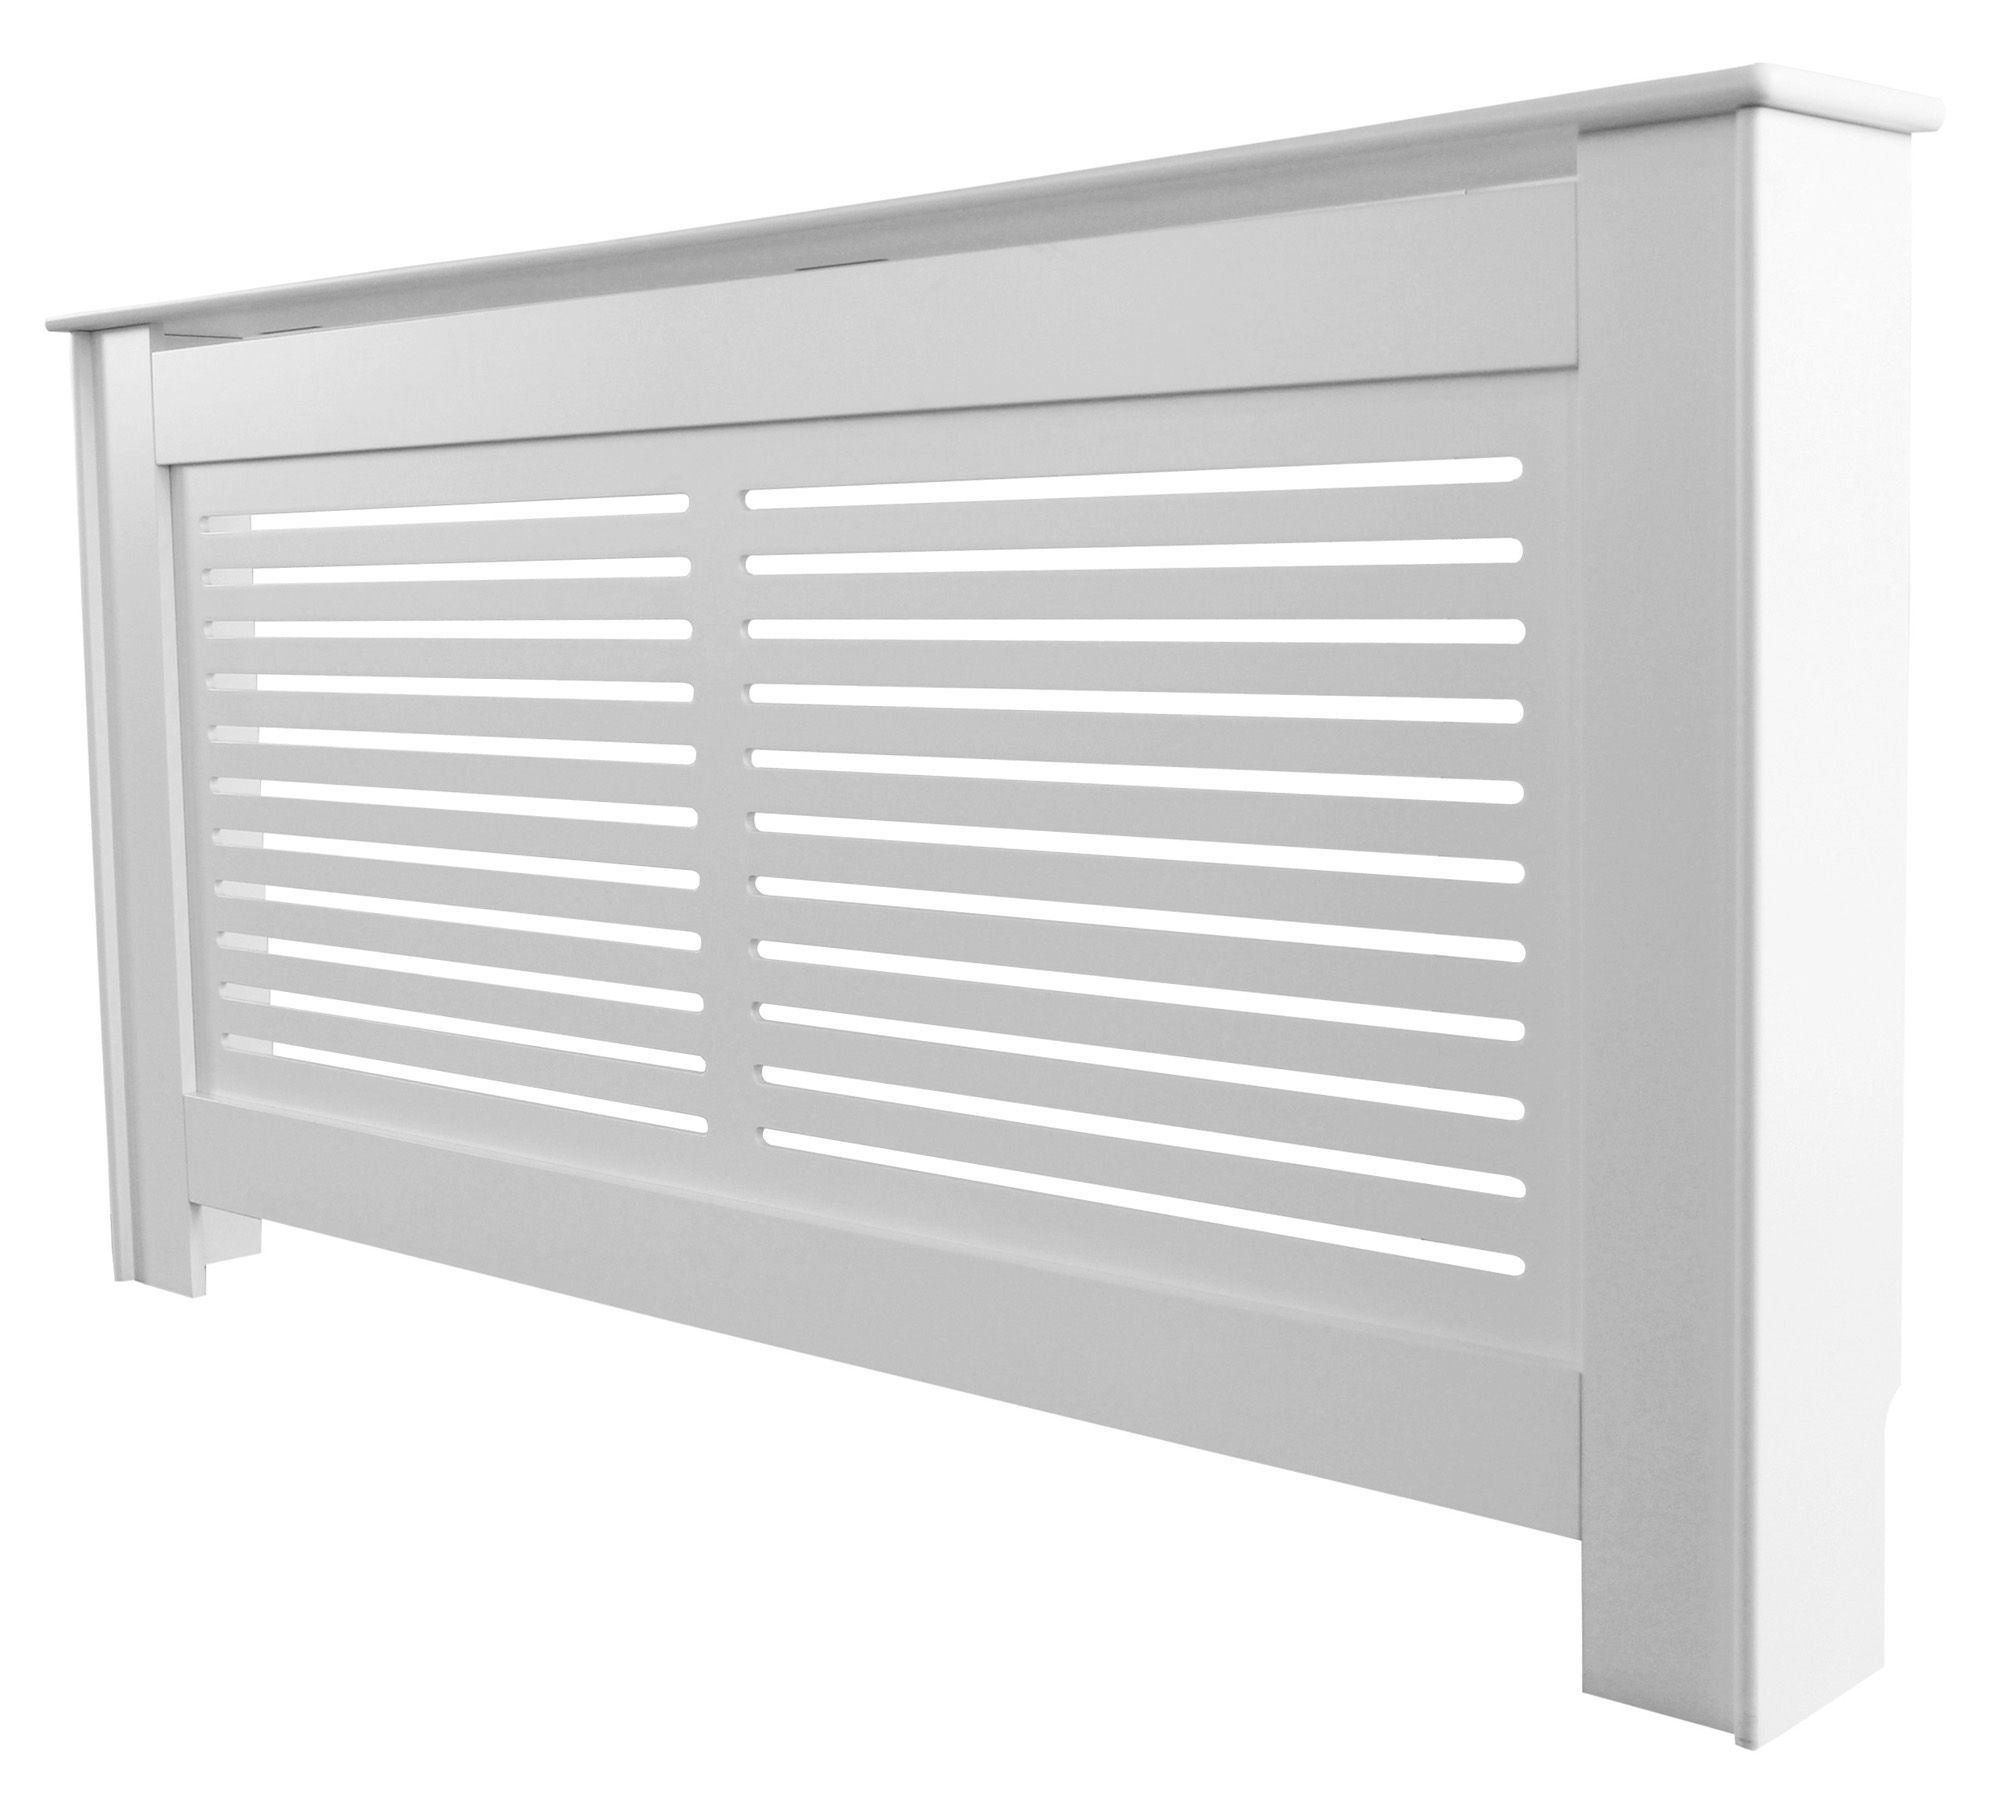 Large White Suffolk Radiator Cover Departments DIY at